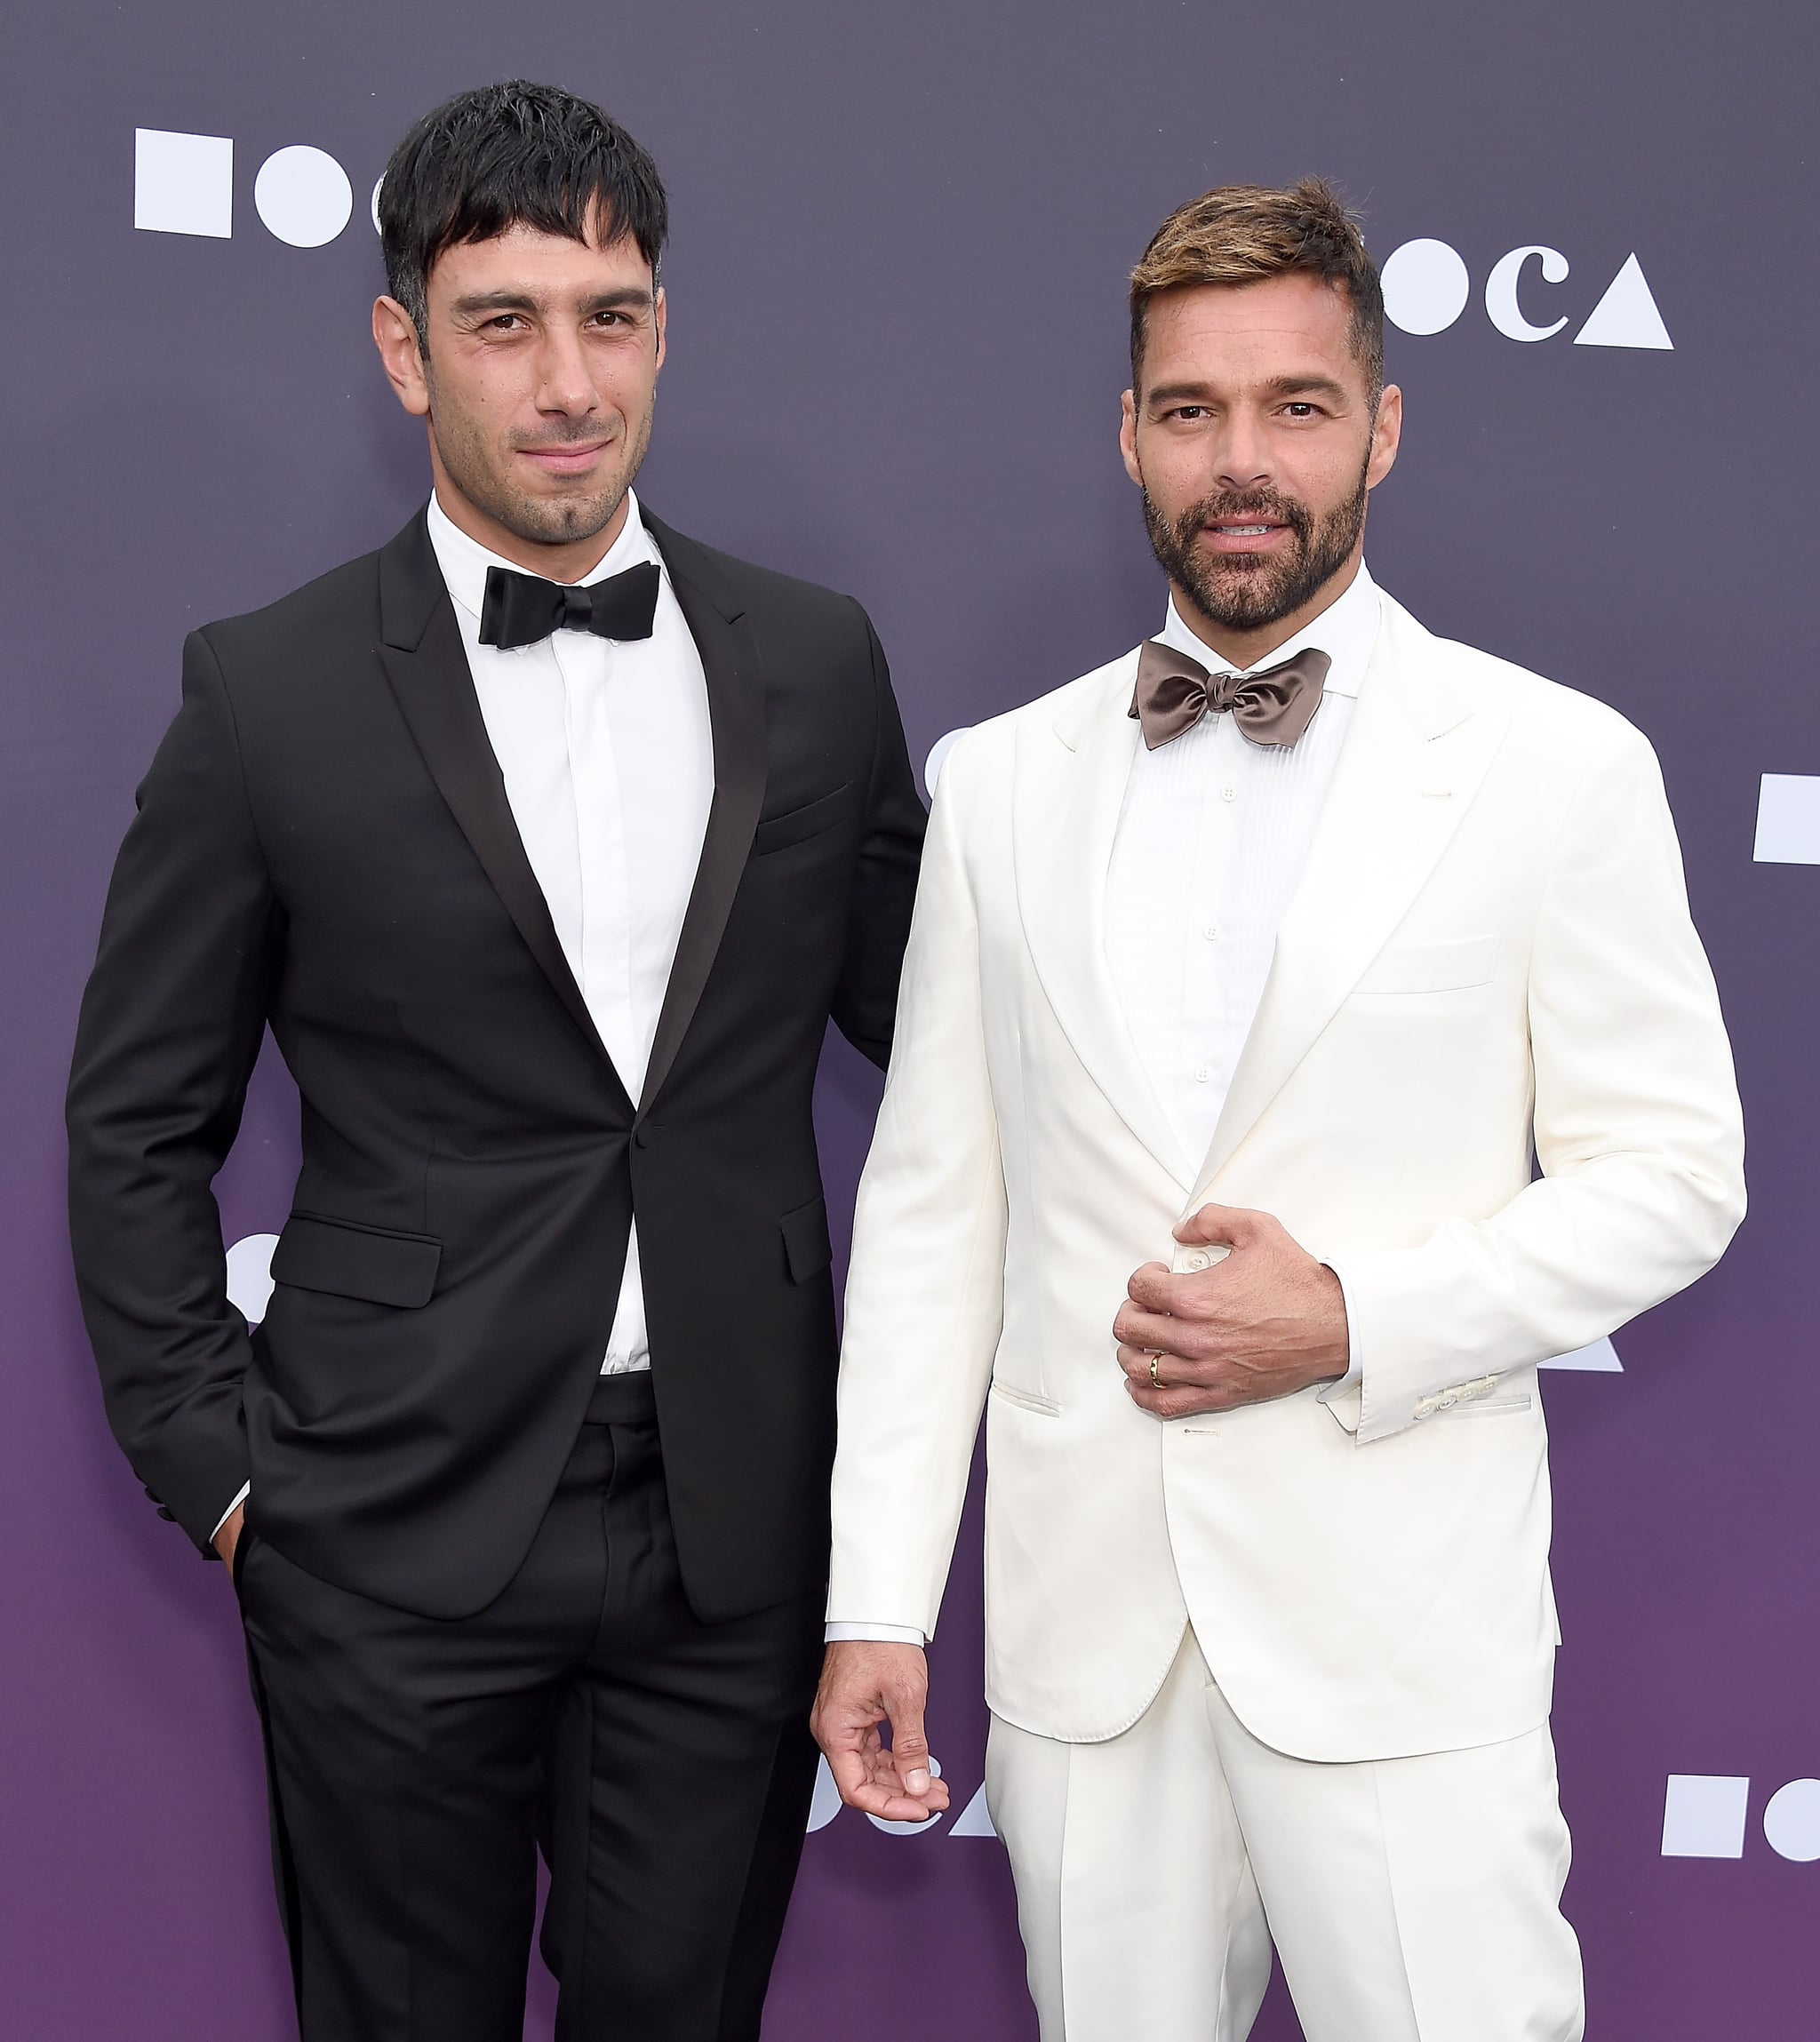 LOS ANGELES, CA - MAY 18:  Ricky Martin and Jwan Yosef attend the MOCA Benefit 2019 at The Geffen Contemporary at MOCA on May 18, 2019 in Los Angeles, California.  (Photo by Gregg DeGuire/FilmMagic)